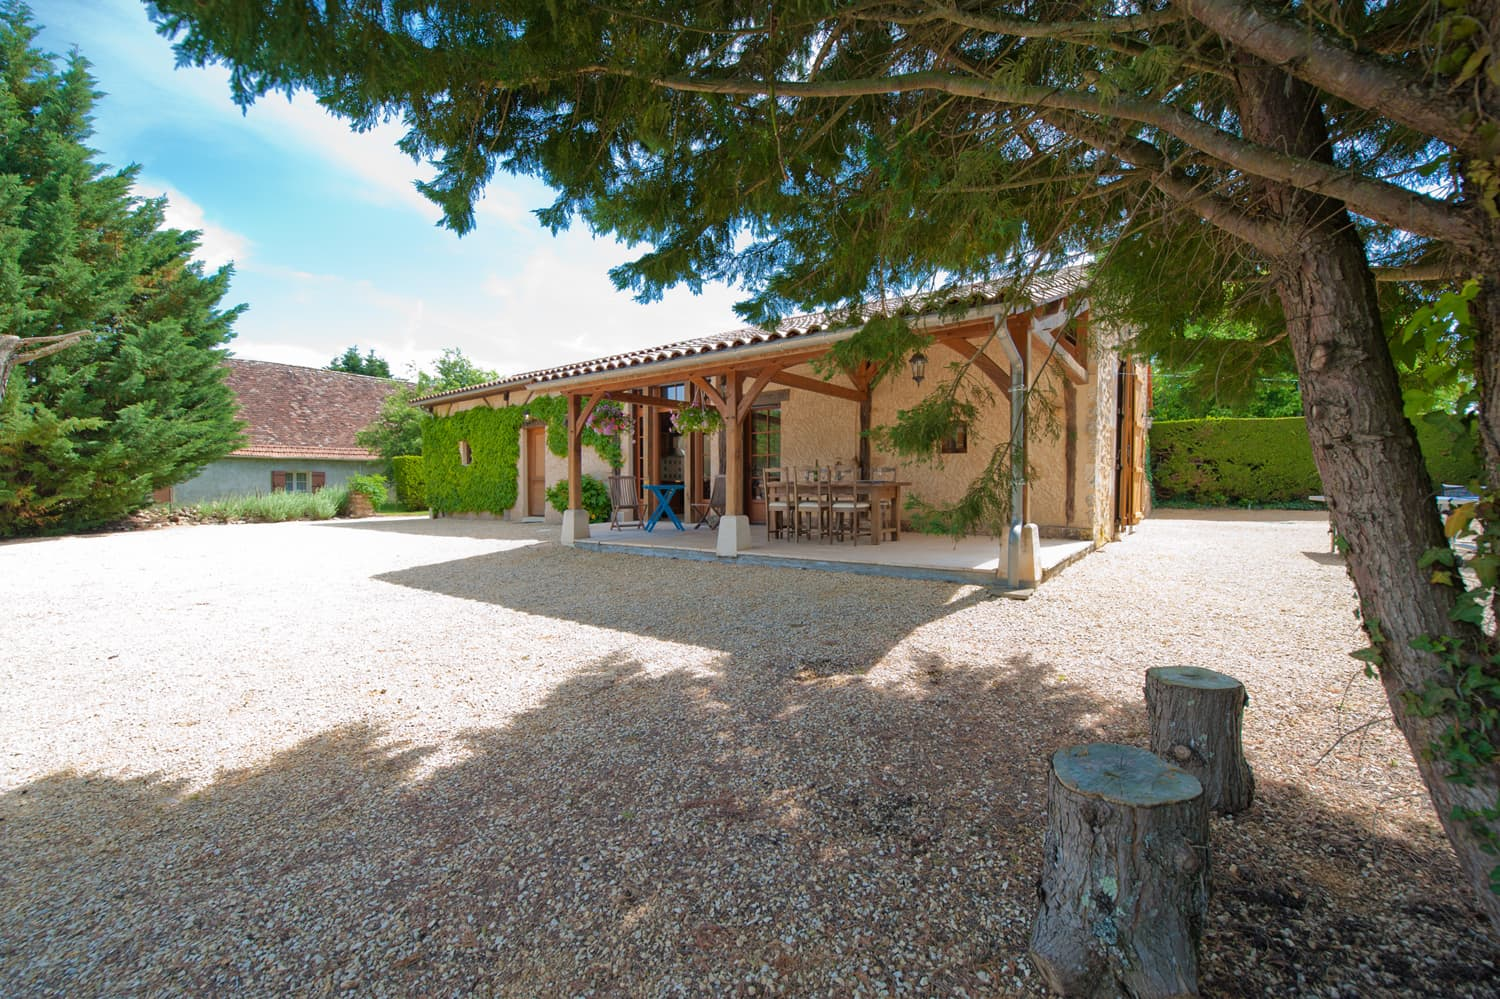 Holiday villa in Dordogne